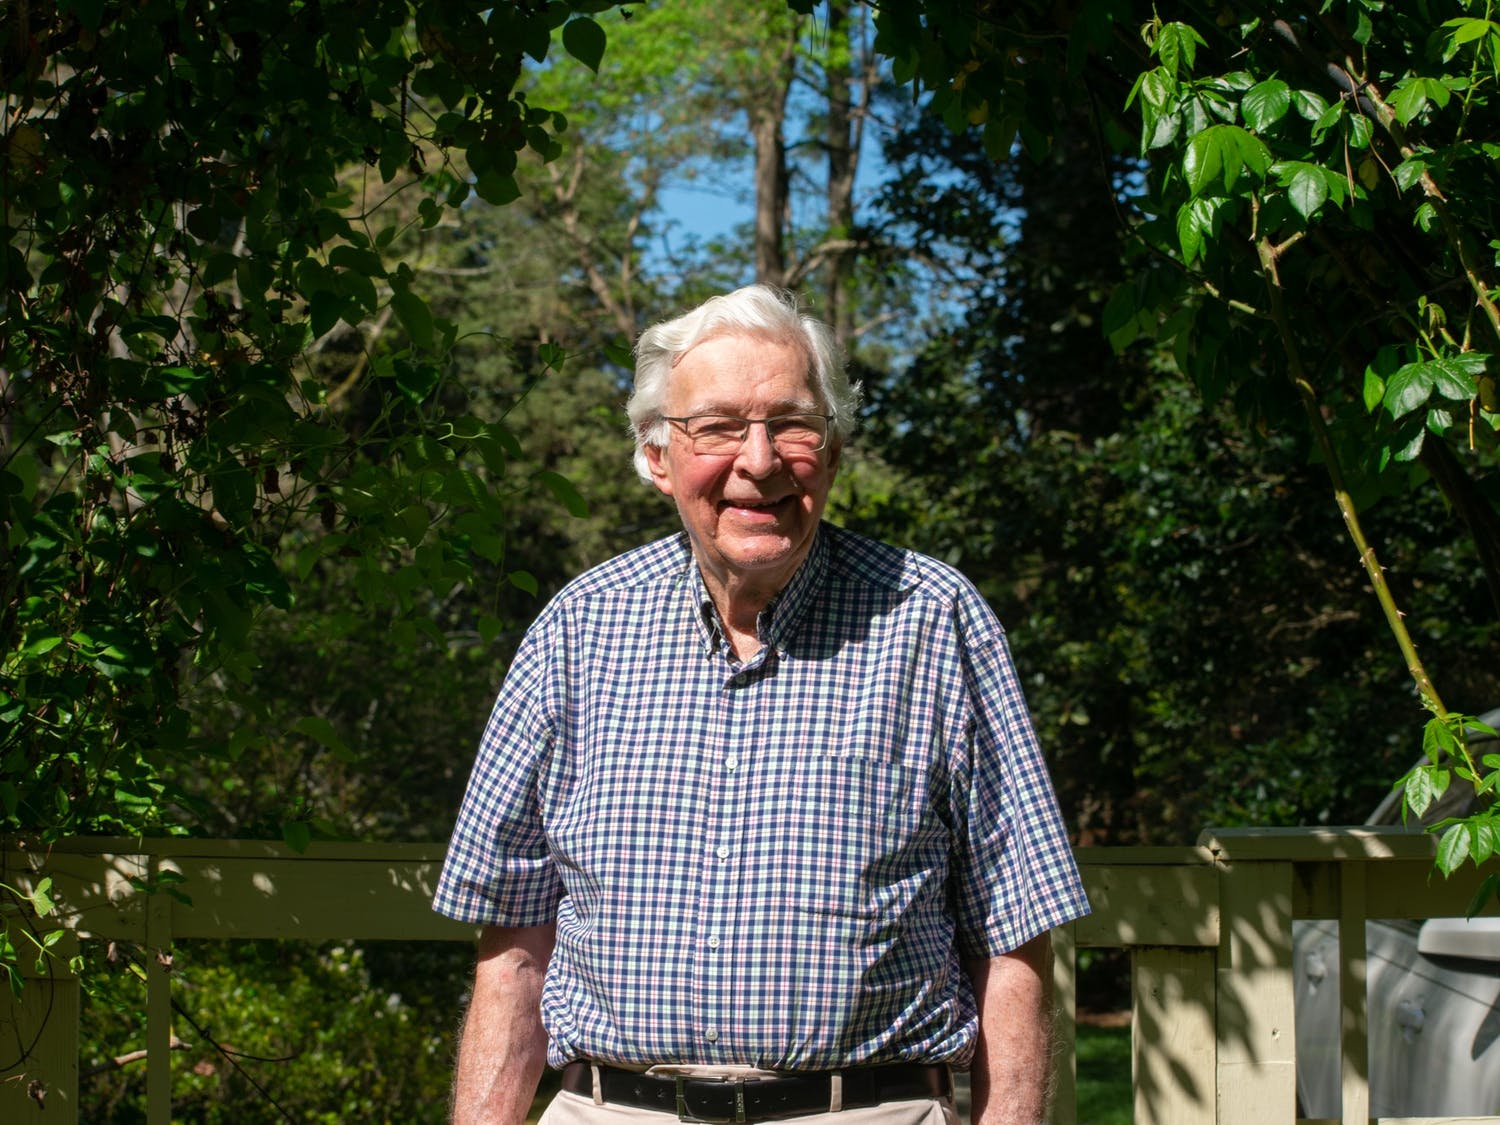 Tom Henkel poses for a photo in his garden on April 12, 2021. Henkel is one of the key organizers of the Chapel Hill Alliance for a Livable Town and current member of the environmental stewardship. Since 2014, CHALT has successfully ran mayoral and Town Council candidates that share the organization's values of sustainable development.